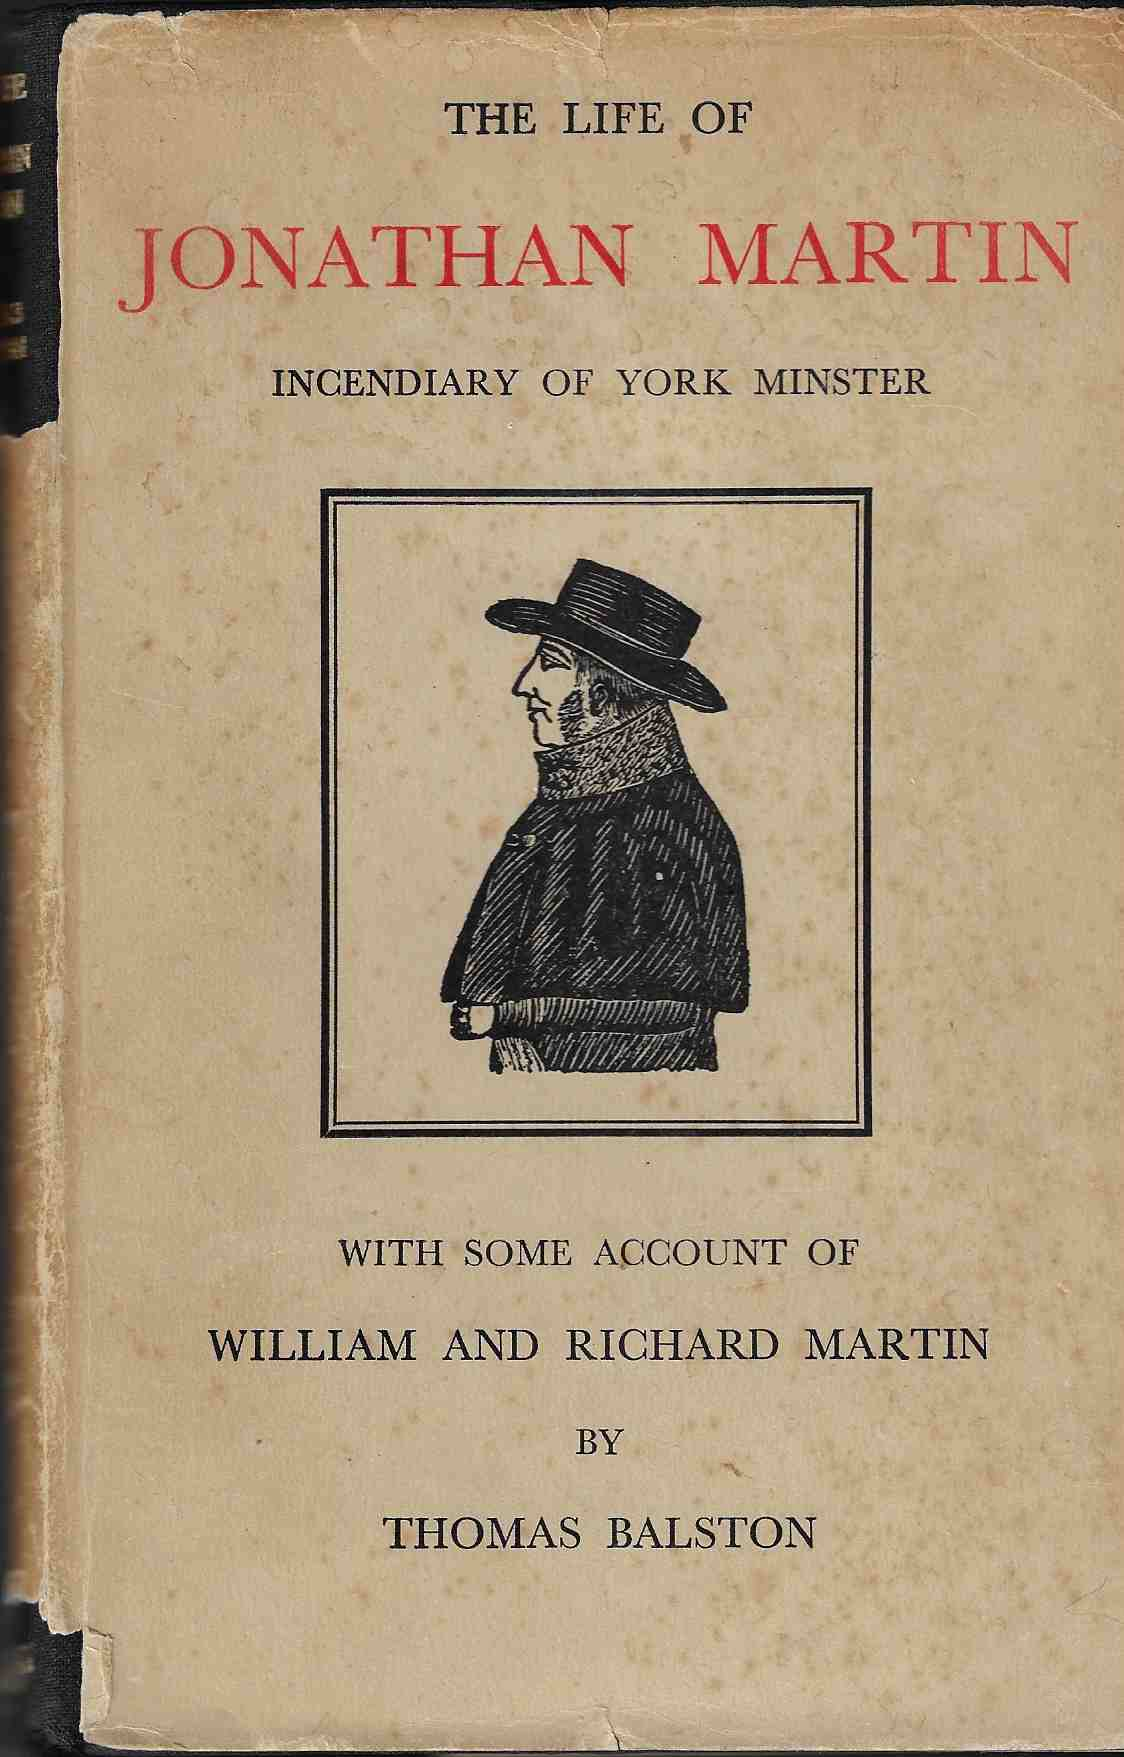 Image for The Life of Jonathan Martin, Incendiary of York Minster, with Some Account of William and Richard Martin.